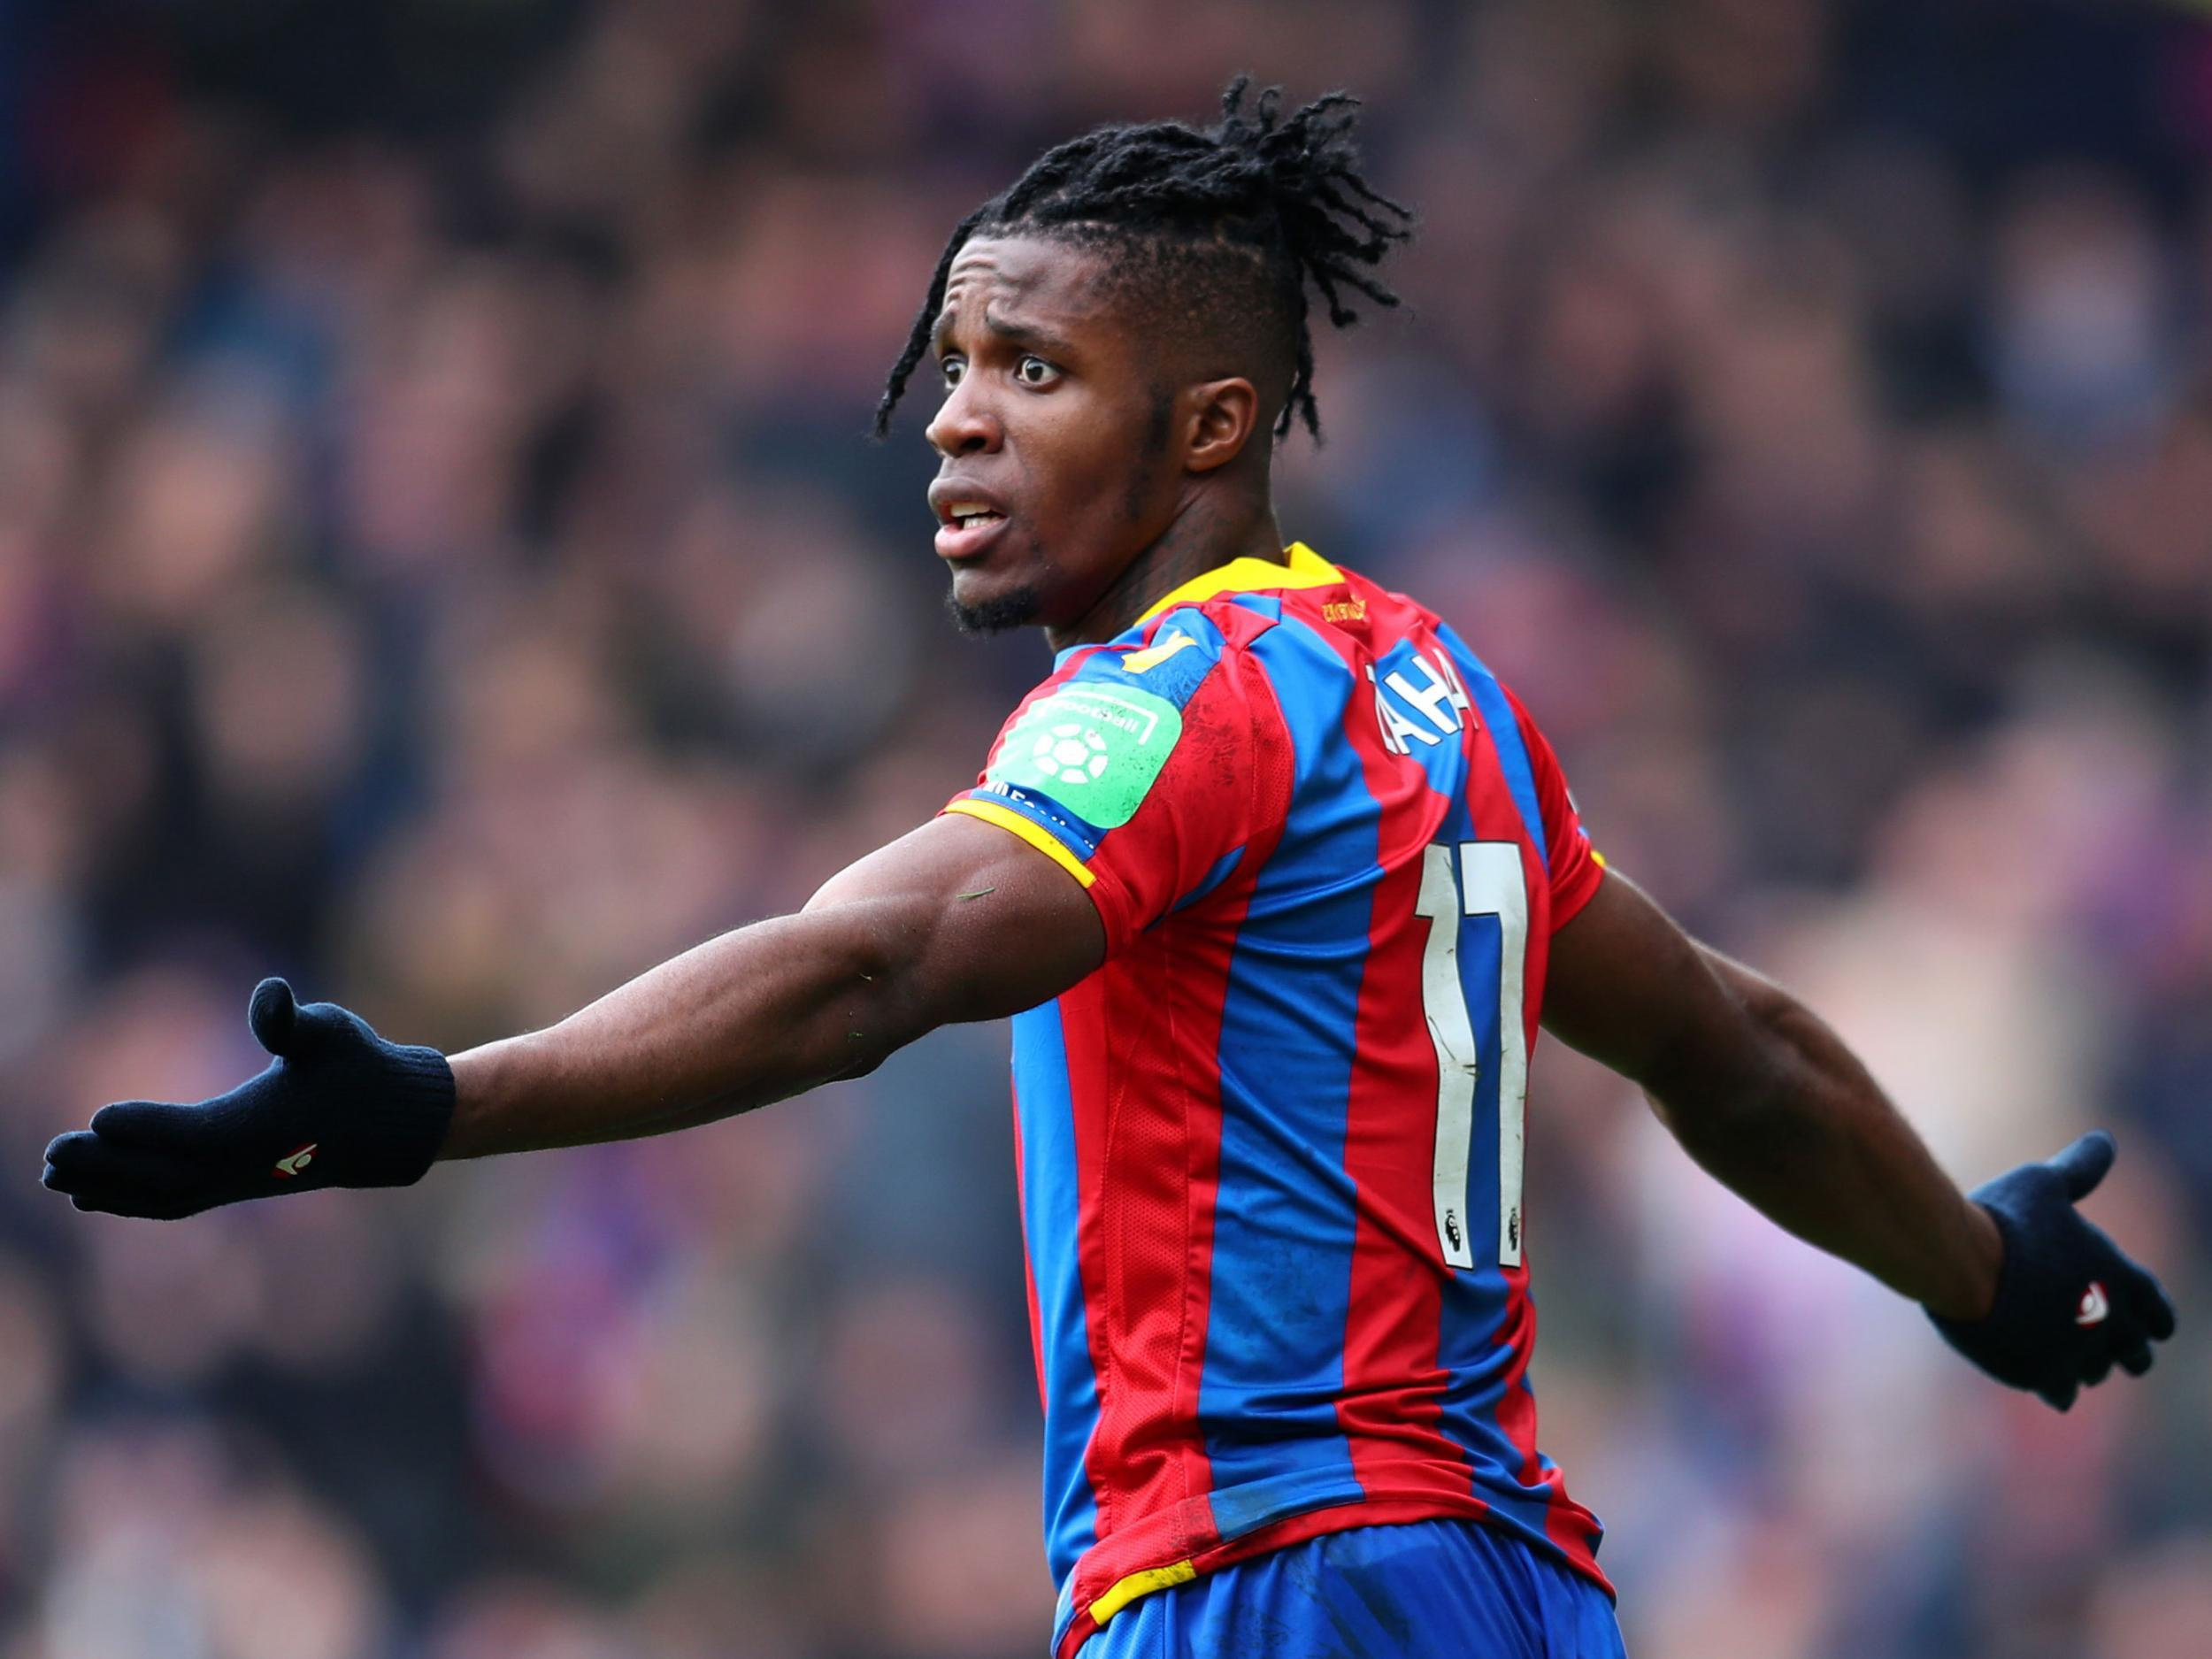 Charlie Nicholas comments as Arsenal reportedly target Crystal Palace's Wilfried Zaha - Bóng Đá